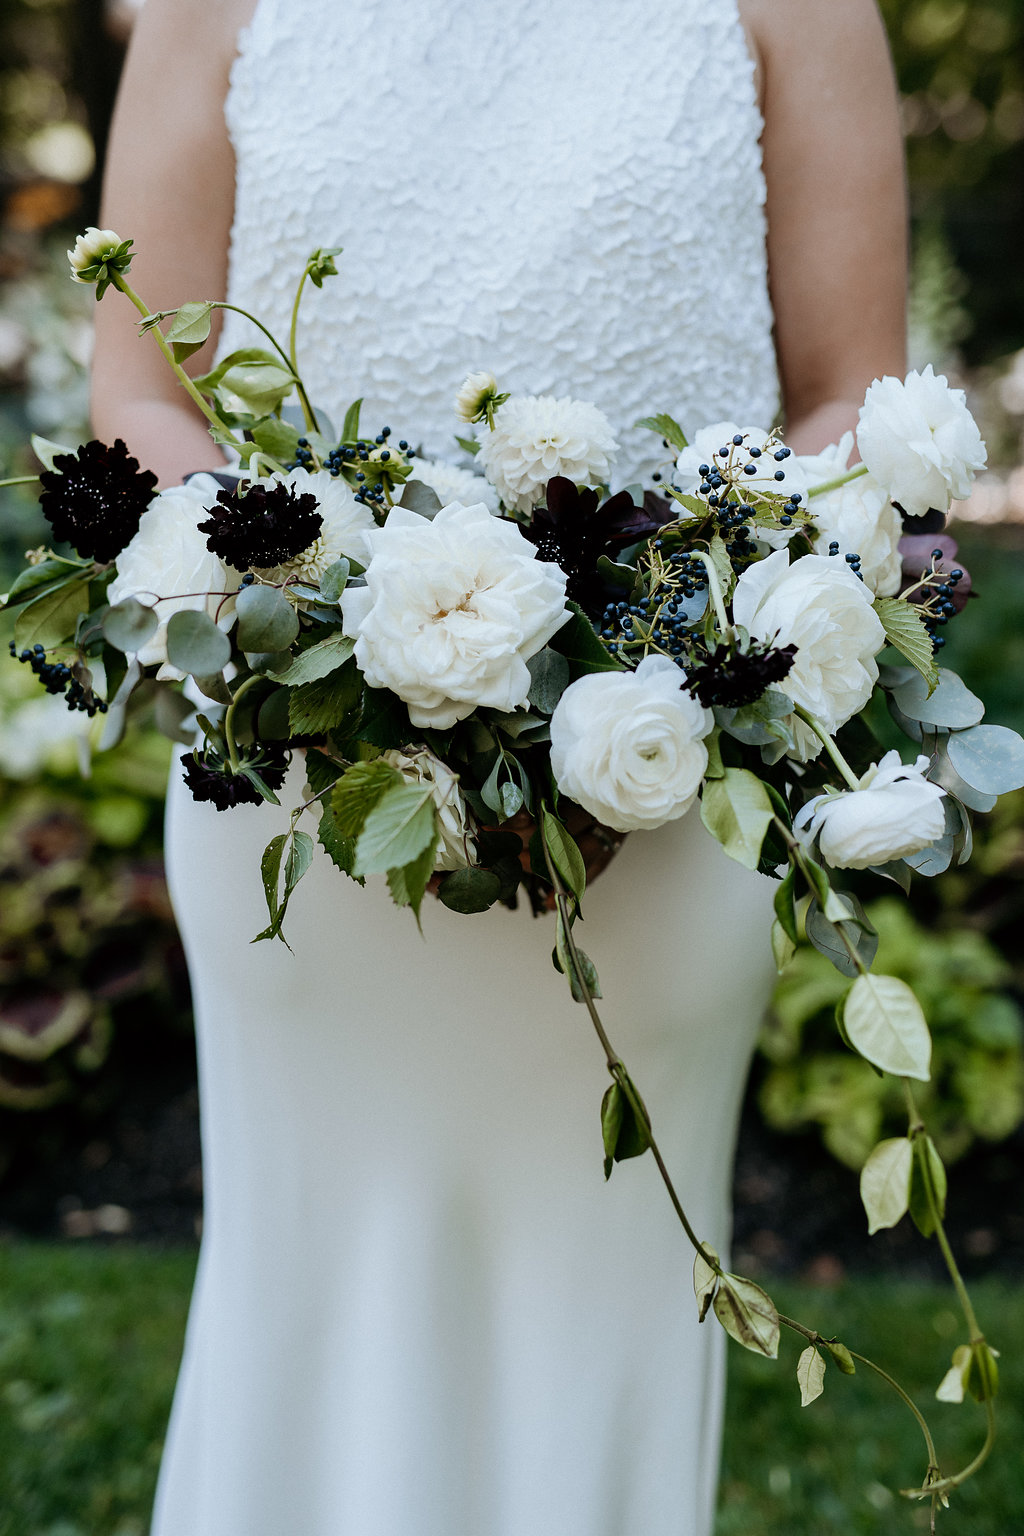 White and Black Bridal Bouquet - Stone House Creative